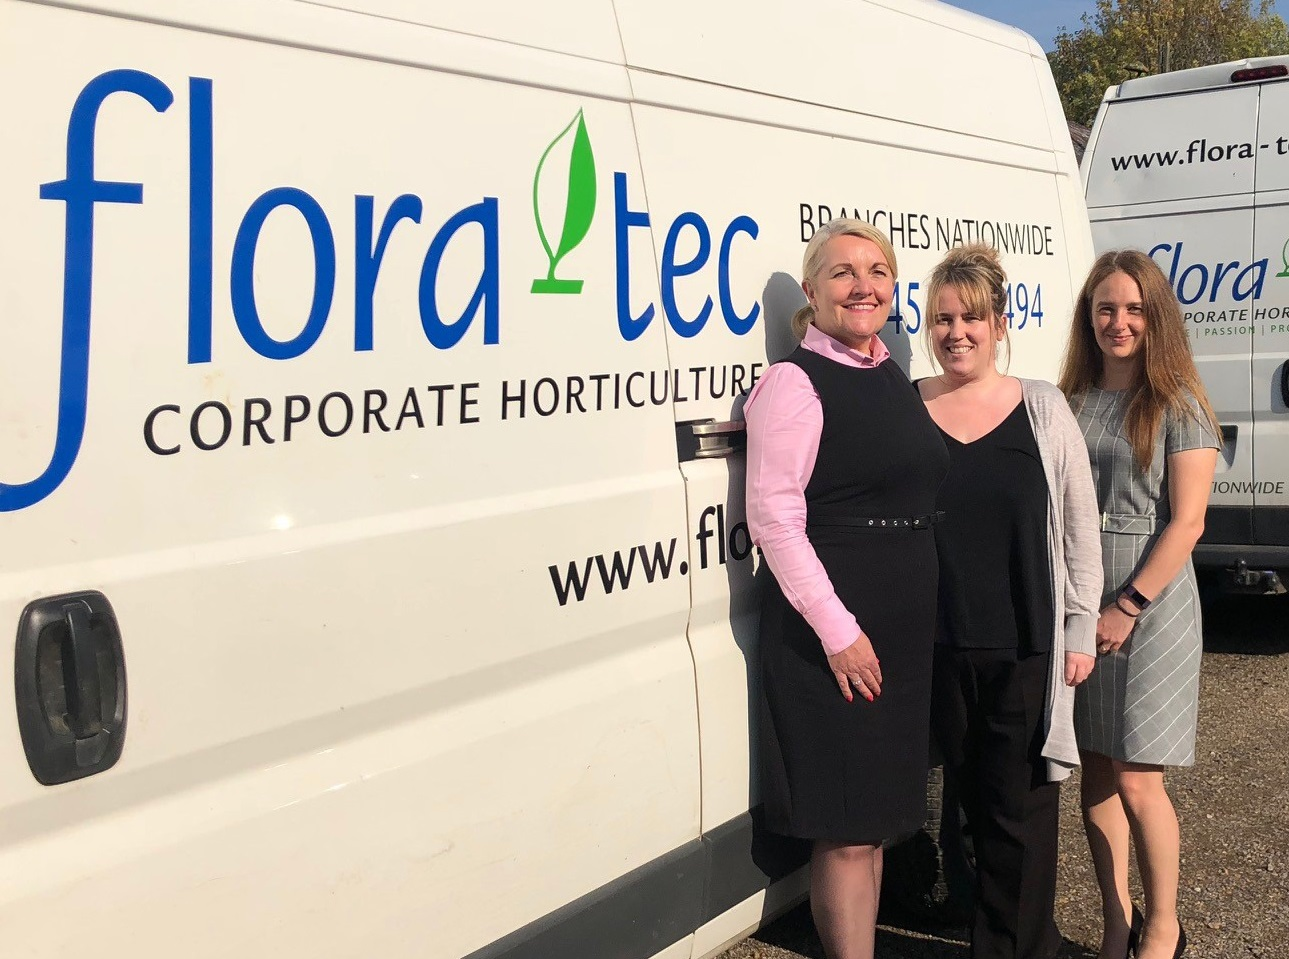 https://itsupplychain.com/wp-content/uploads/2018/11/Fleet-Operations-Jayne-Pett-Fleet-Operations-Kirsty-Richardson-Flora-tec-Kirsty-Ackerley-Flora-tec-900-x-669.jpg